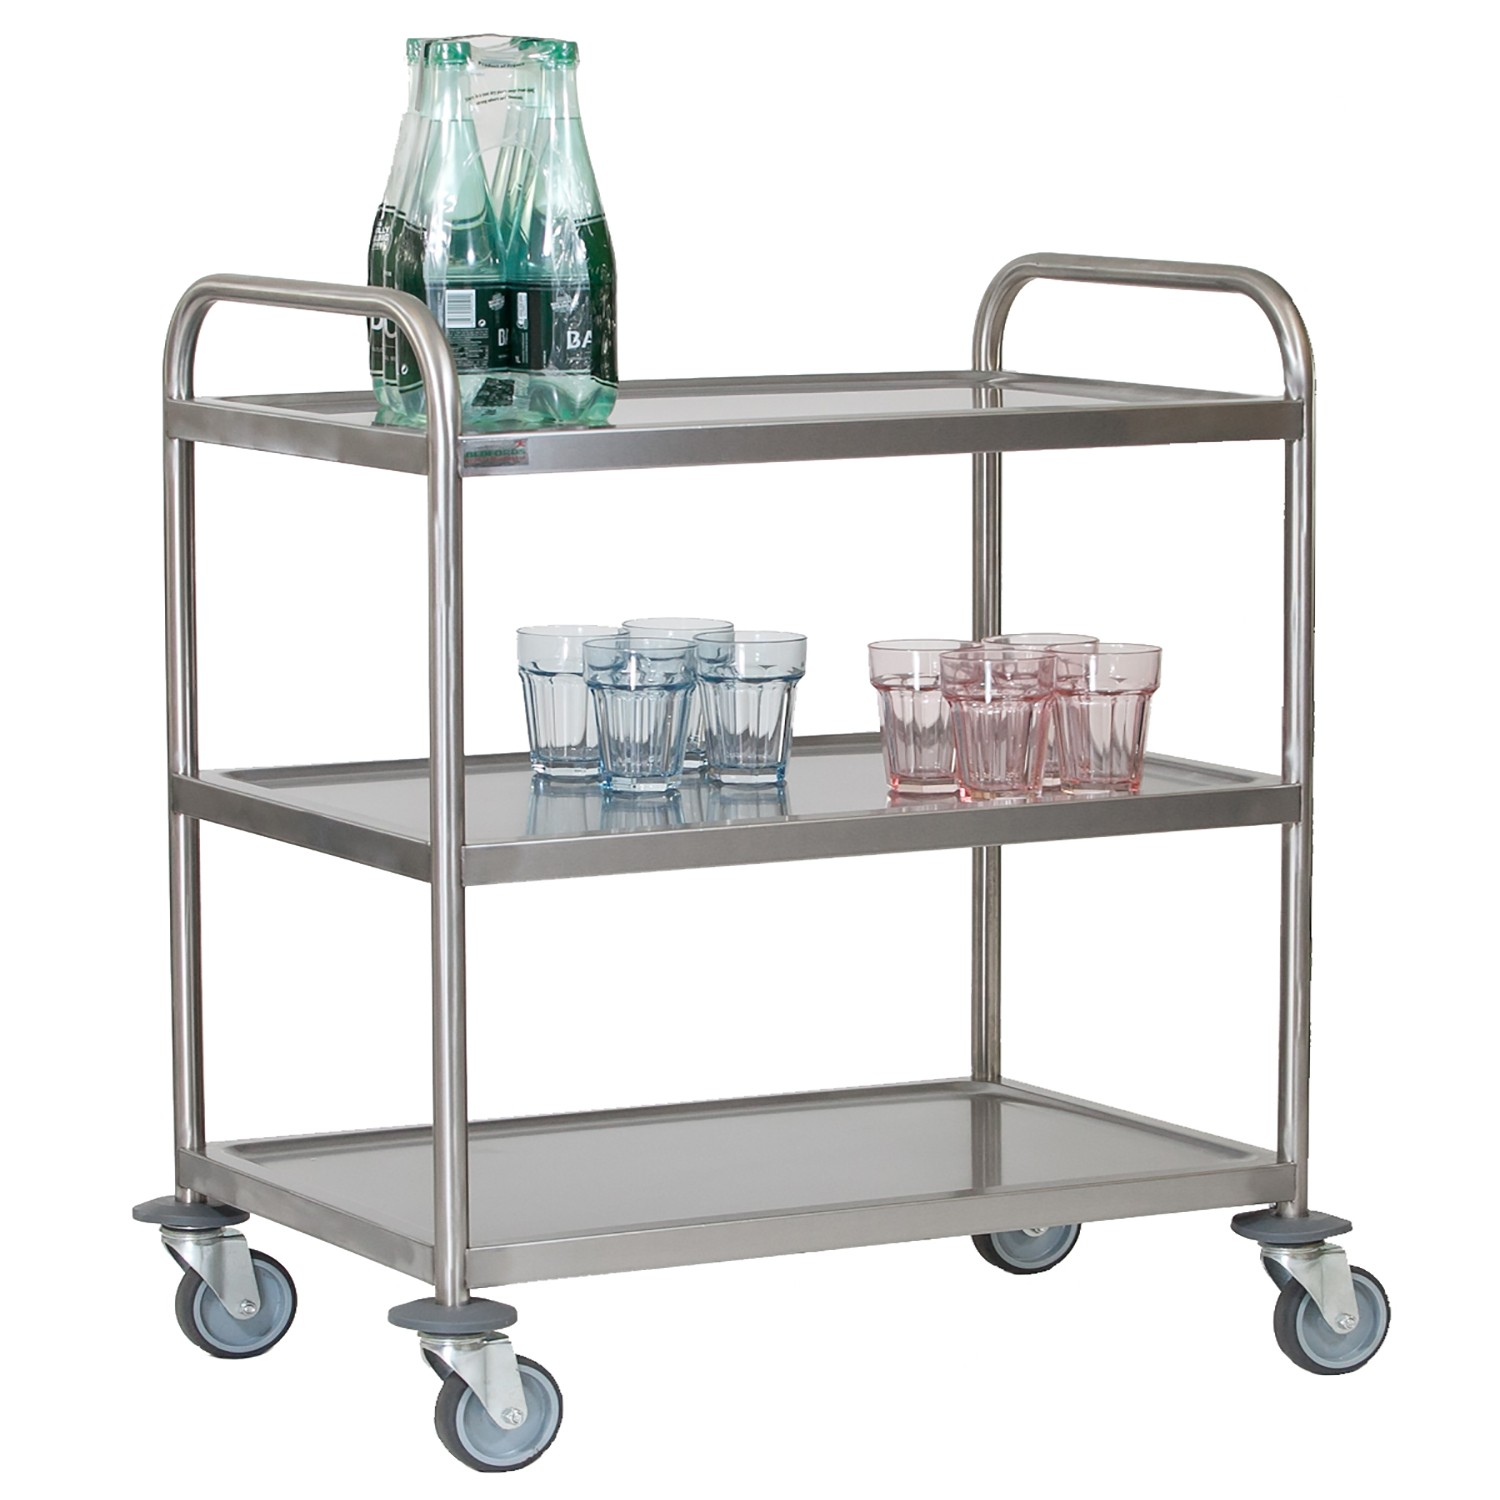 Stainless Steel 3 Tier Trolley Small Bedford Shelving Ltd